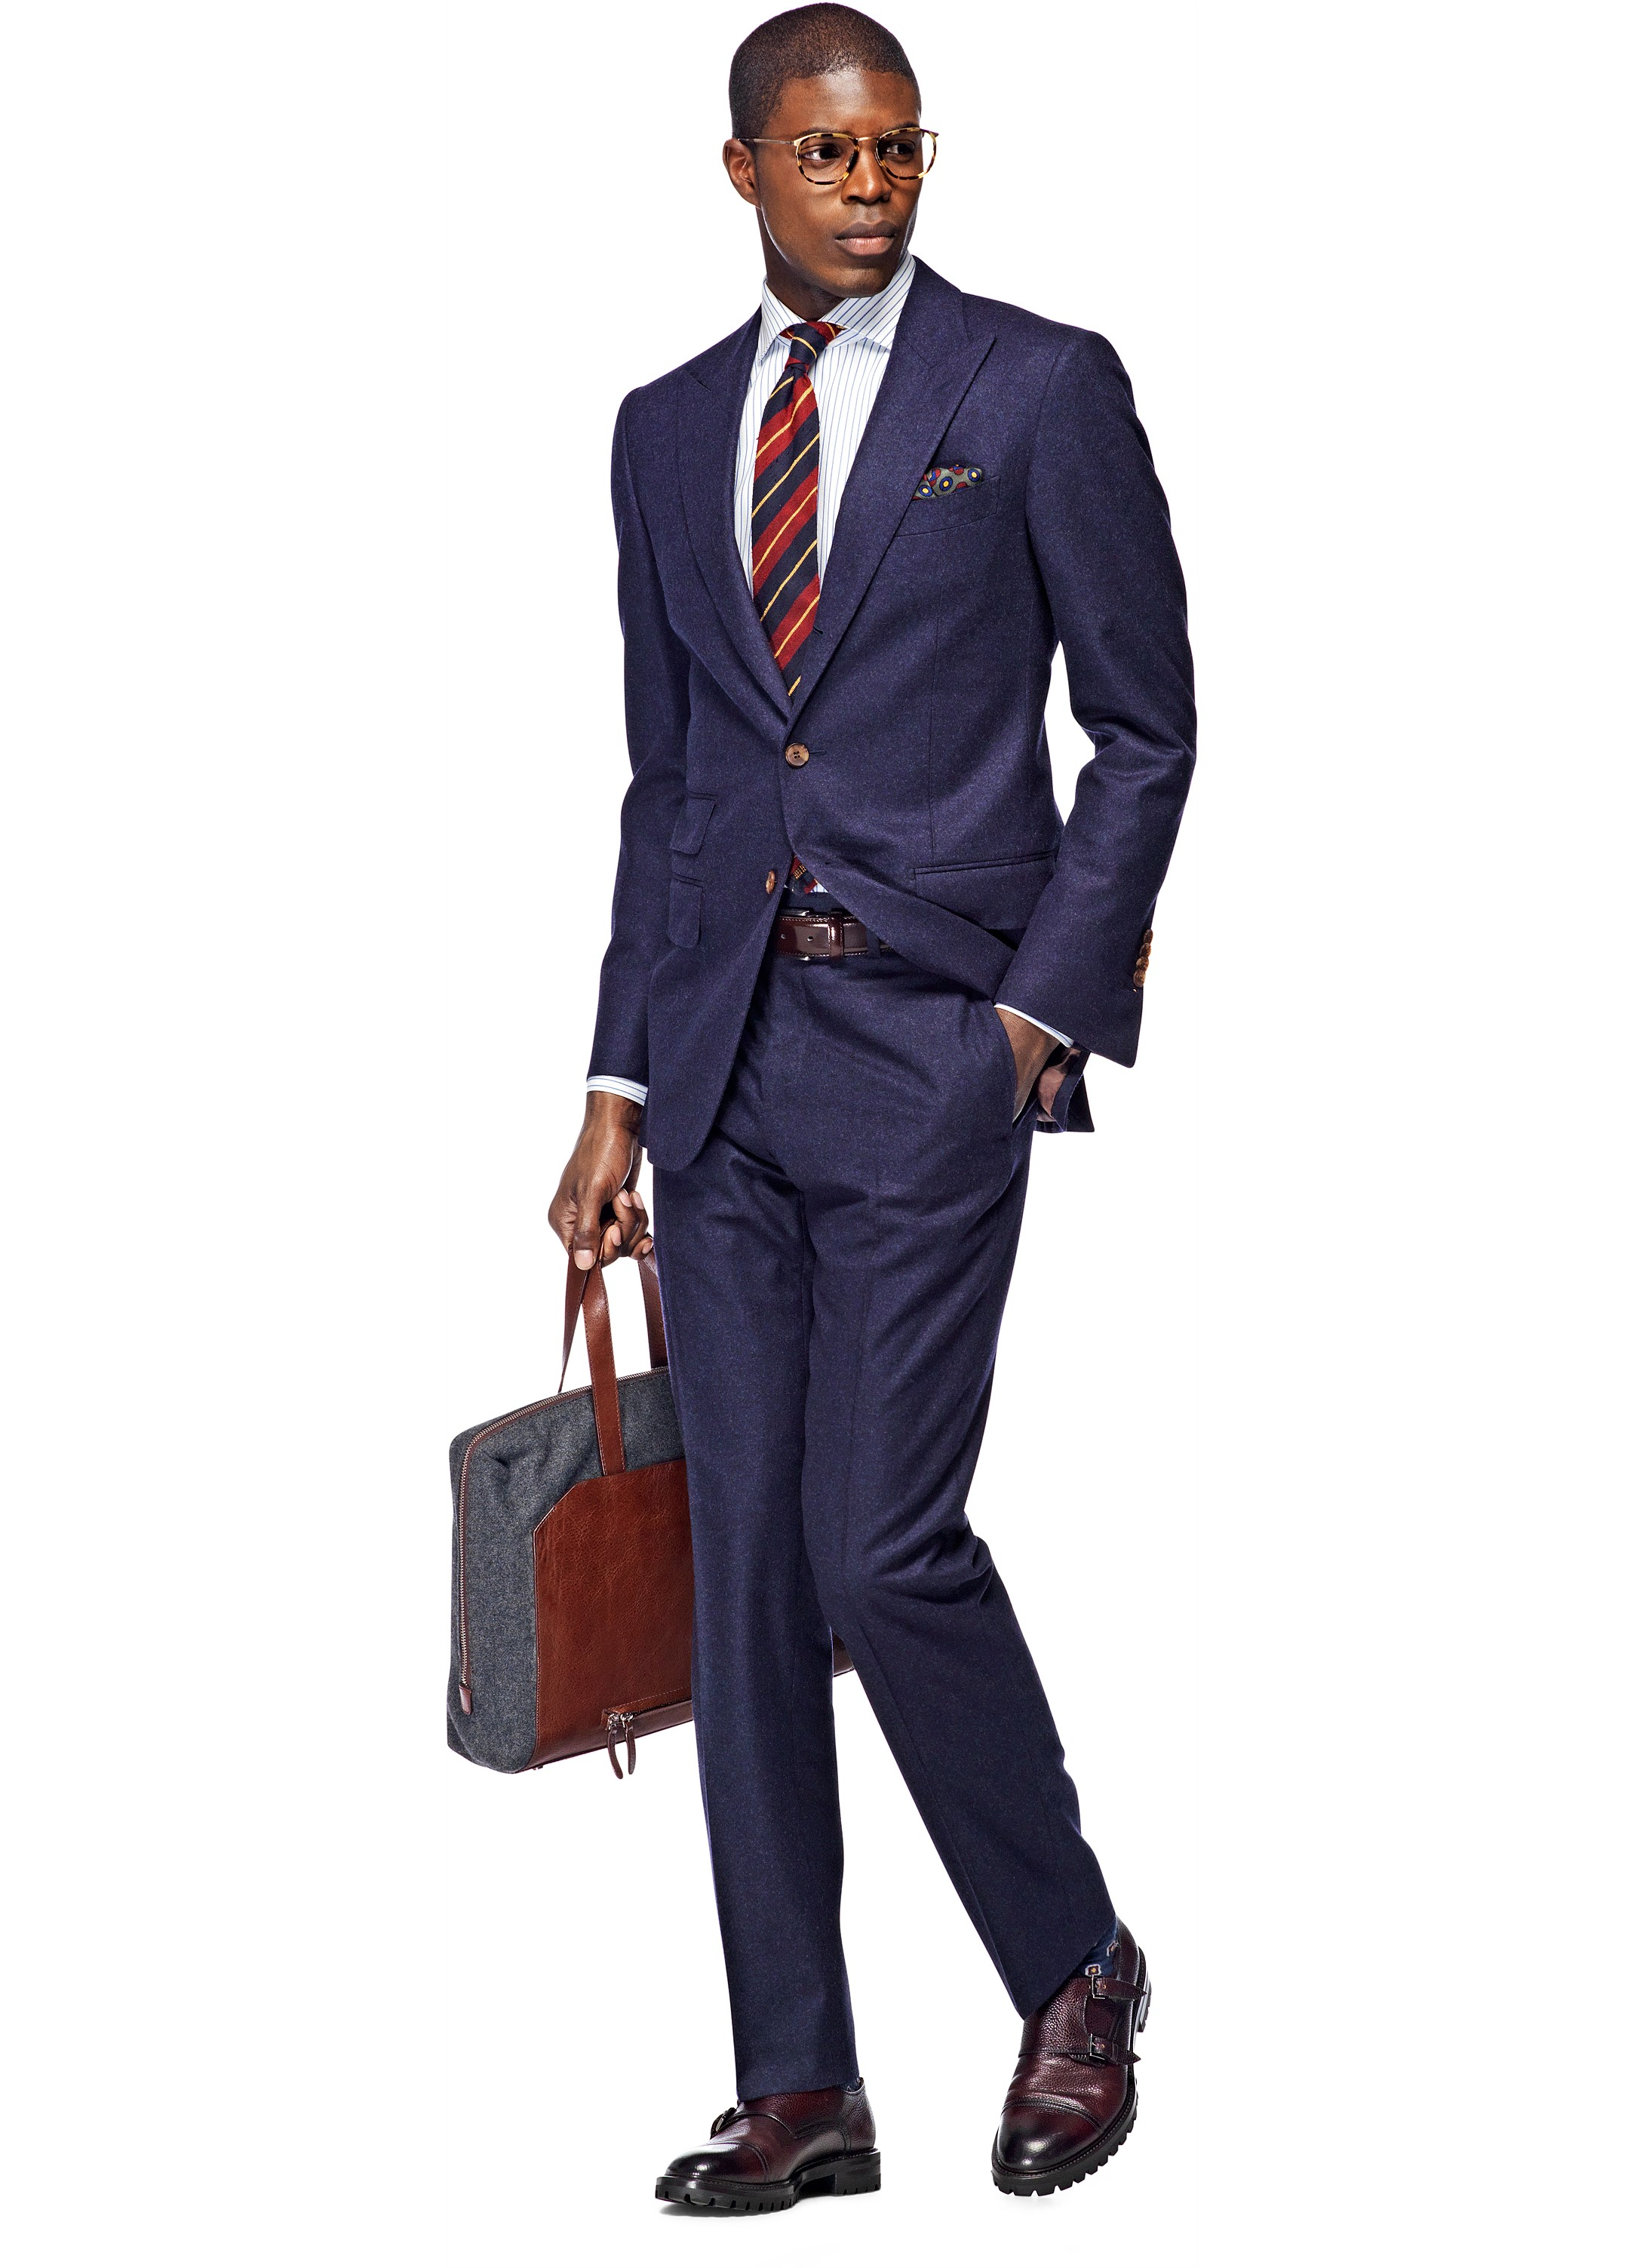 Suits_Blue_Plain_Washington_P3691_Suitsupply_Online_Store_1.jpg